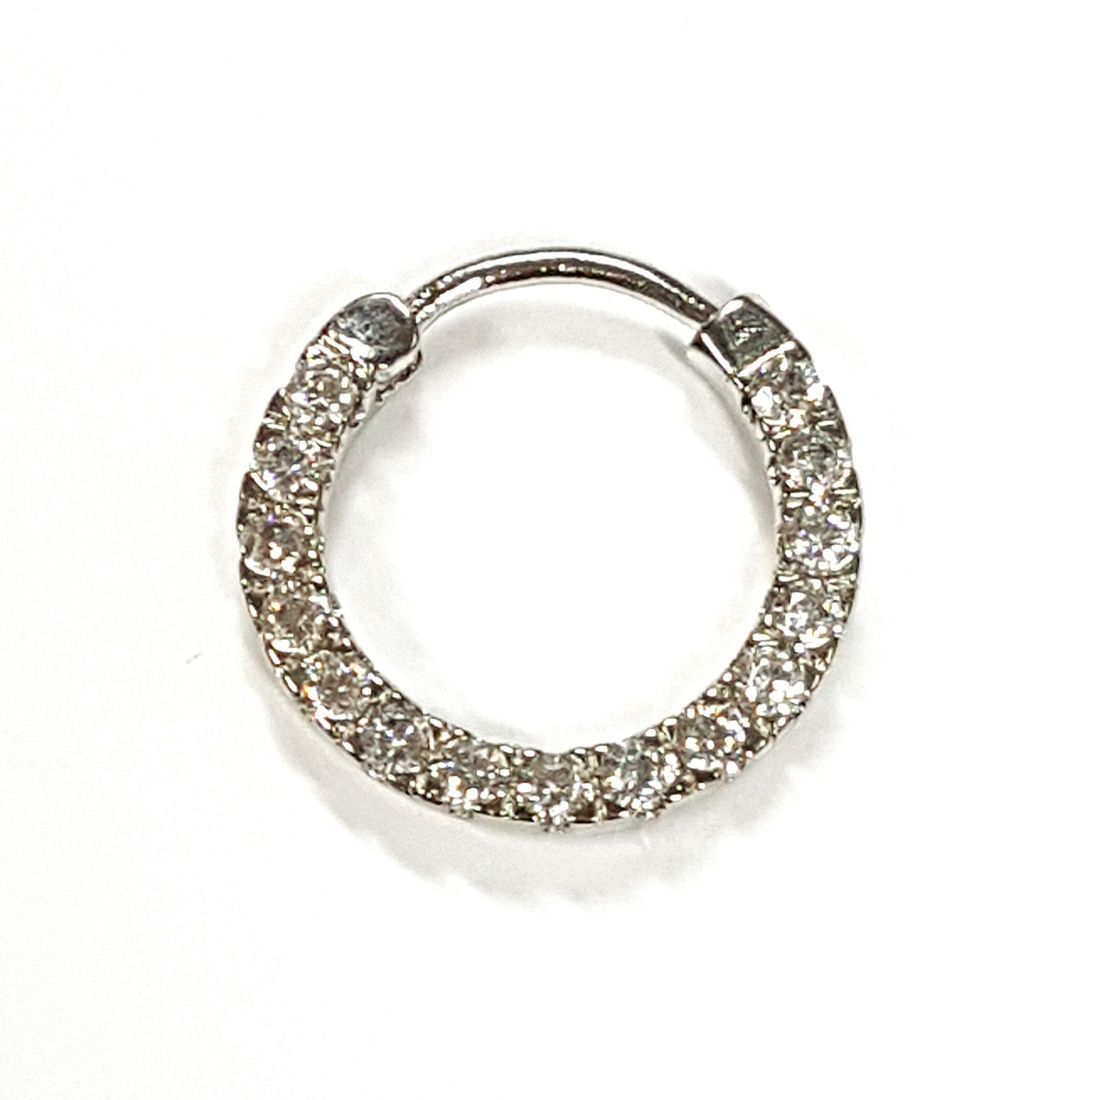 1.2mm titanium crystal septum clicker  available at Kazbah online and our Leicester City Centre Shop